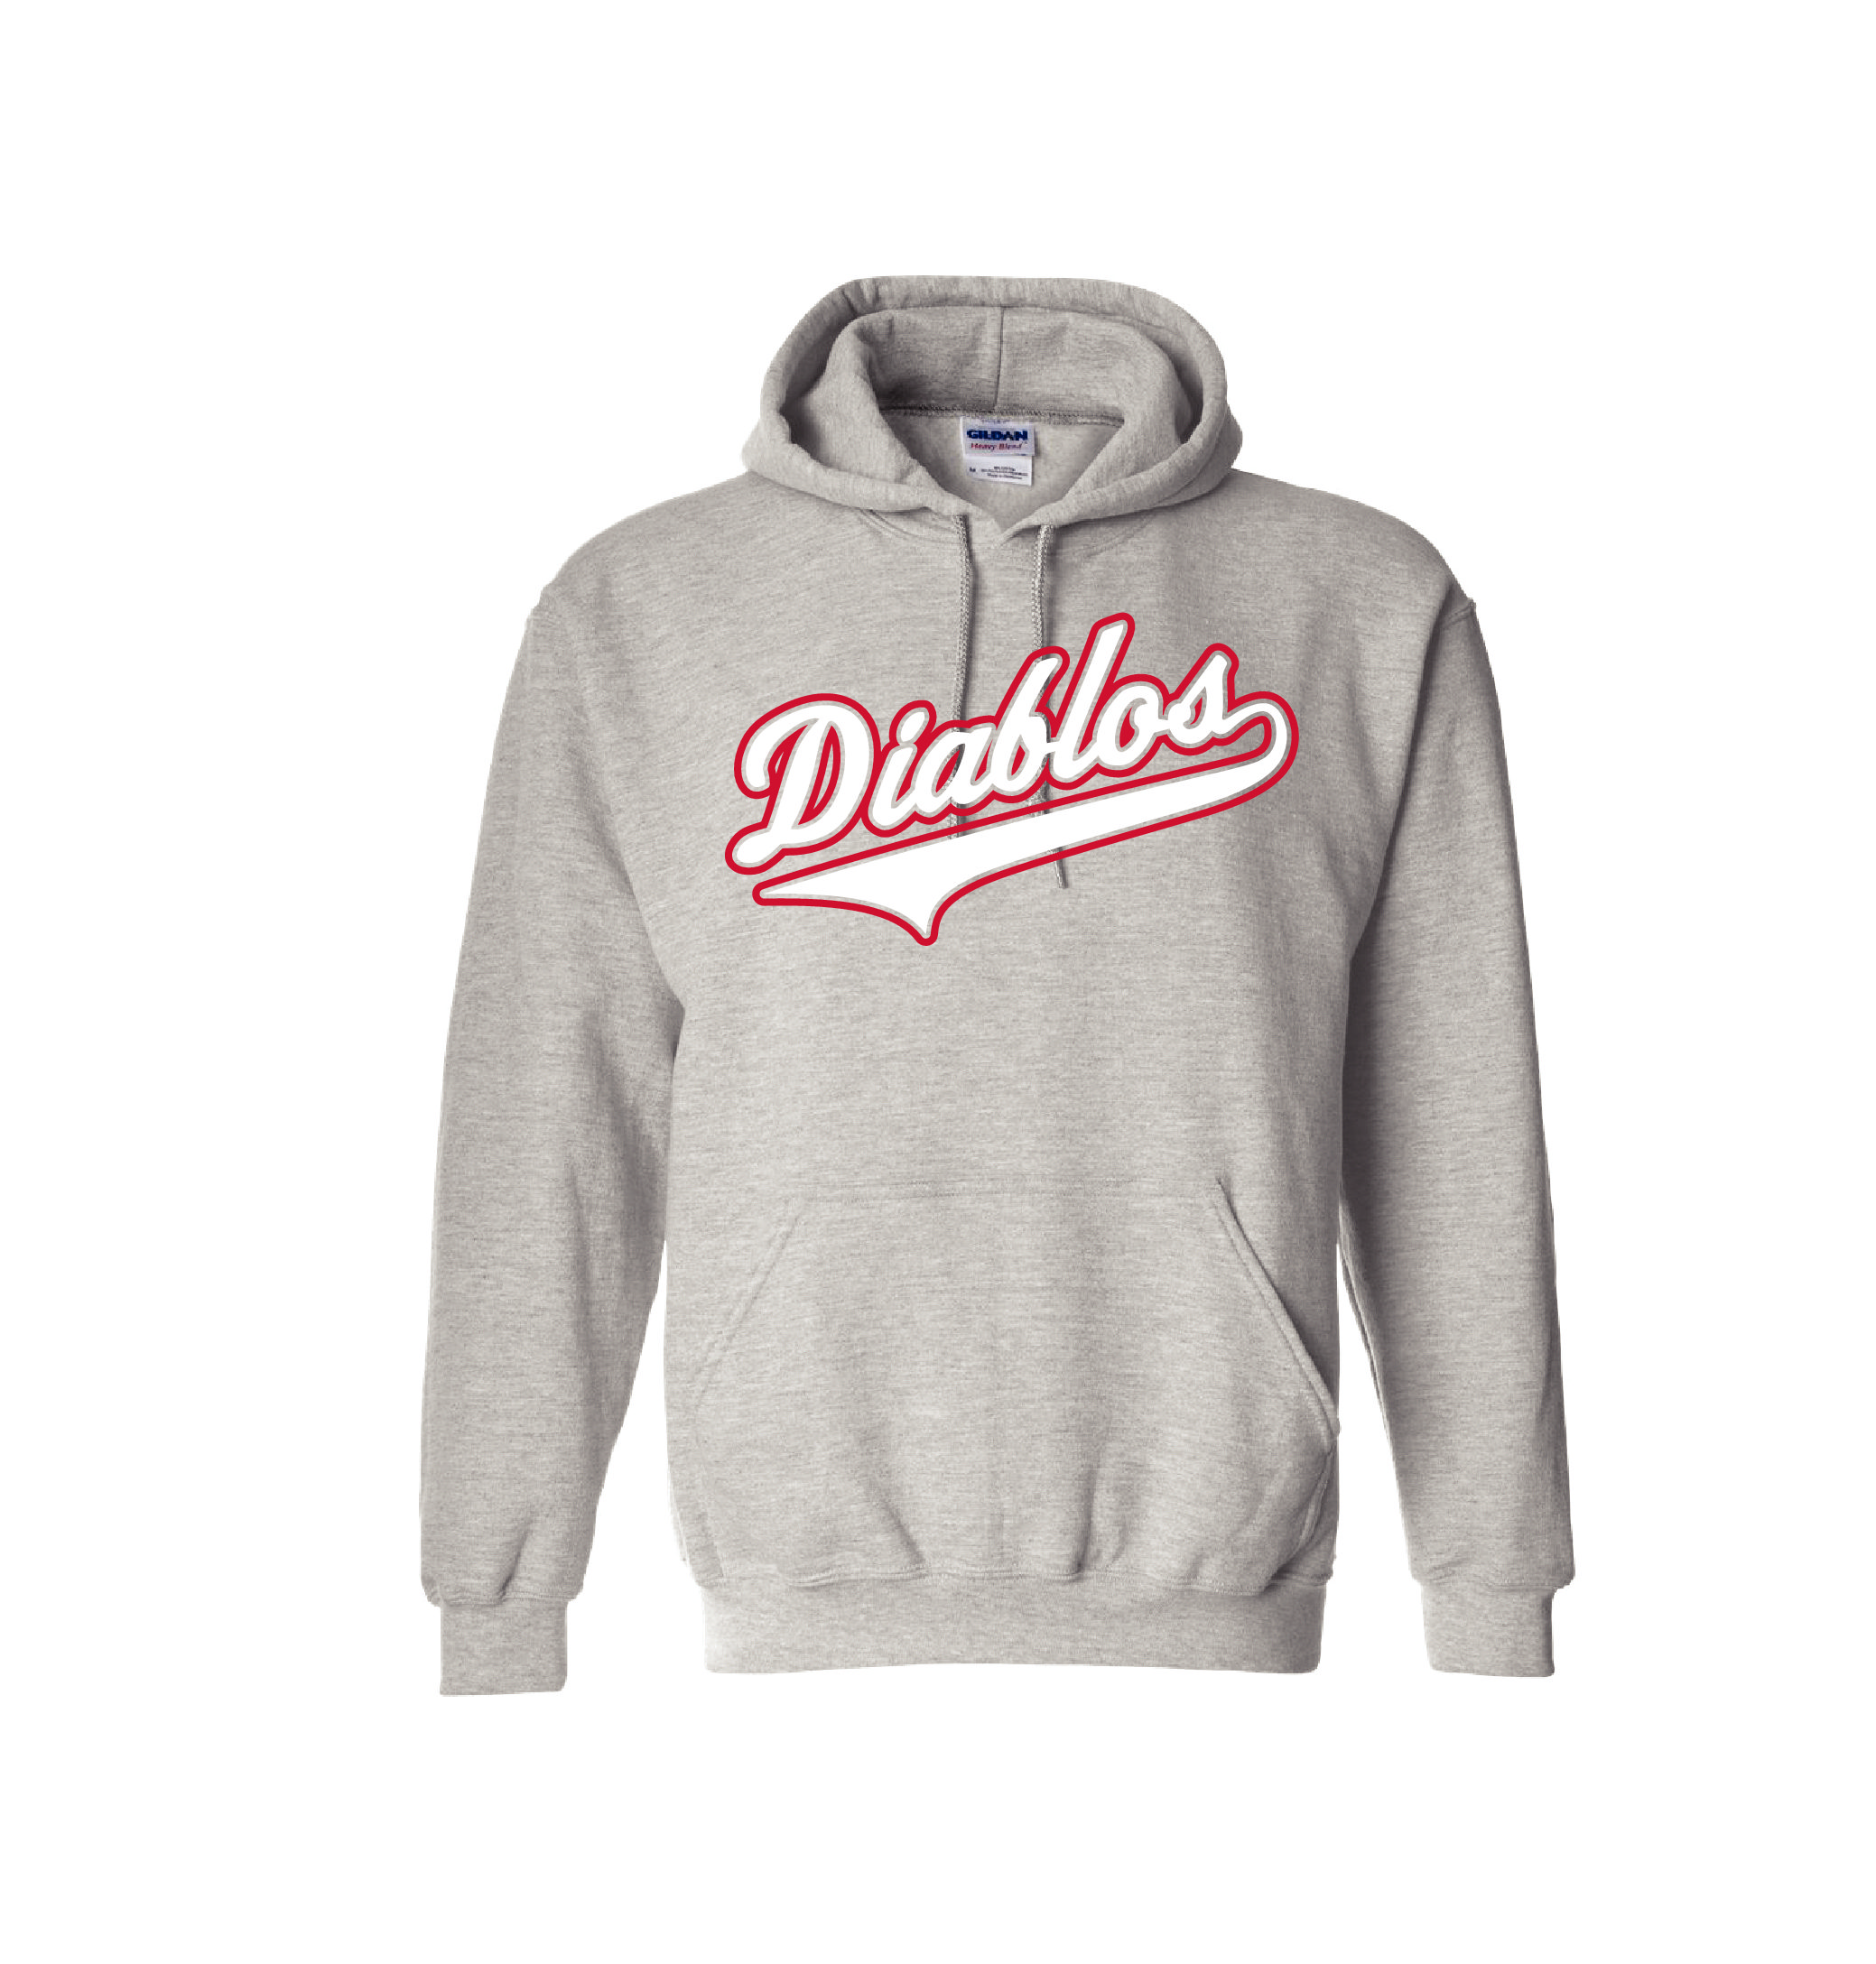 e1a995af7a28d Welcome to the Diablos   Rockets Baseball spiritwear webstore. If you need  ordering assistance